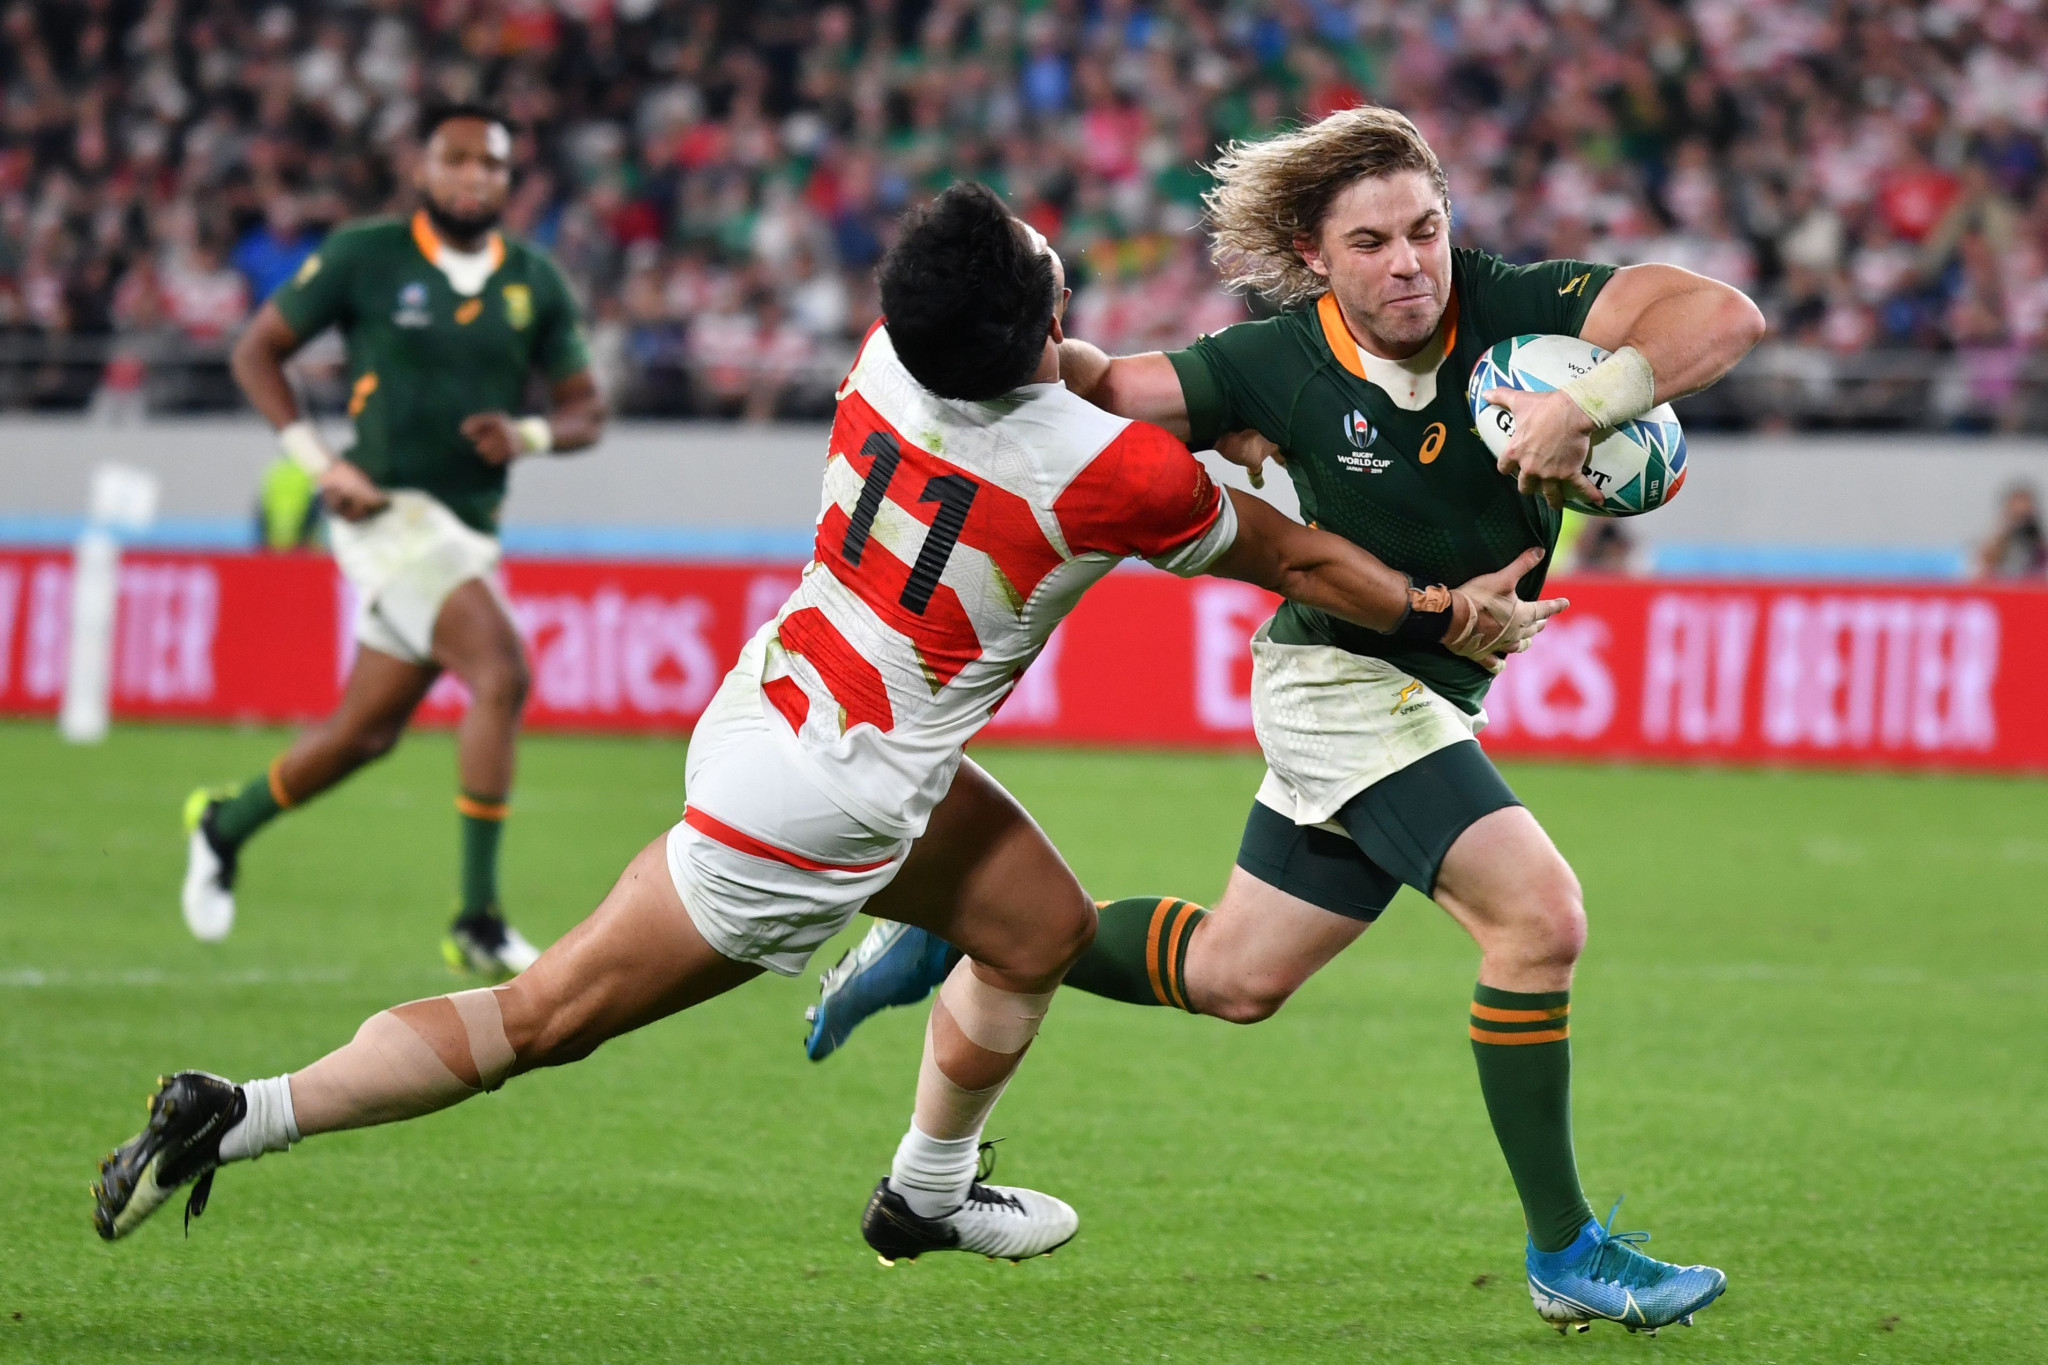 South Africa end Japanese run at Rugby World Cup with quarter-final victory